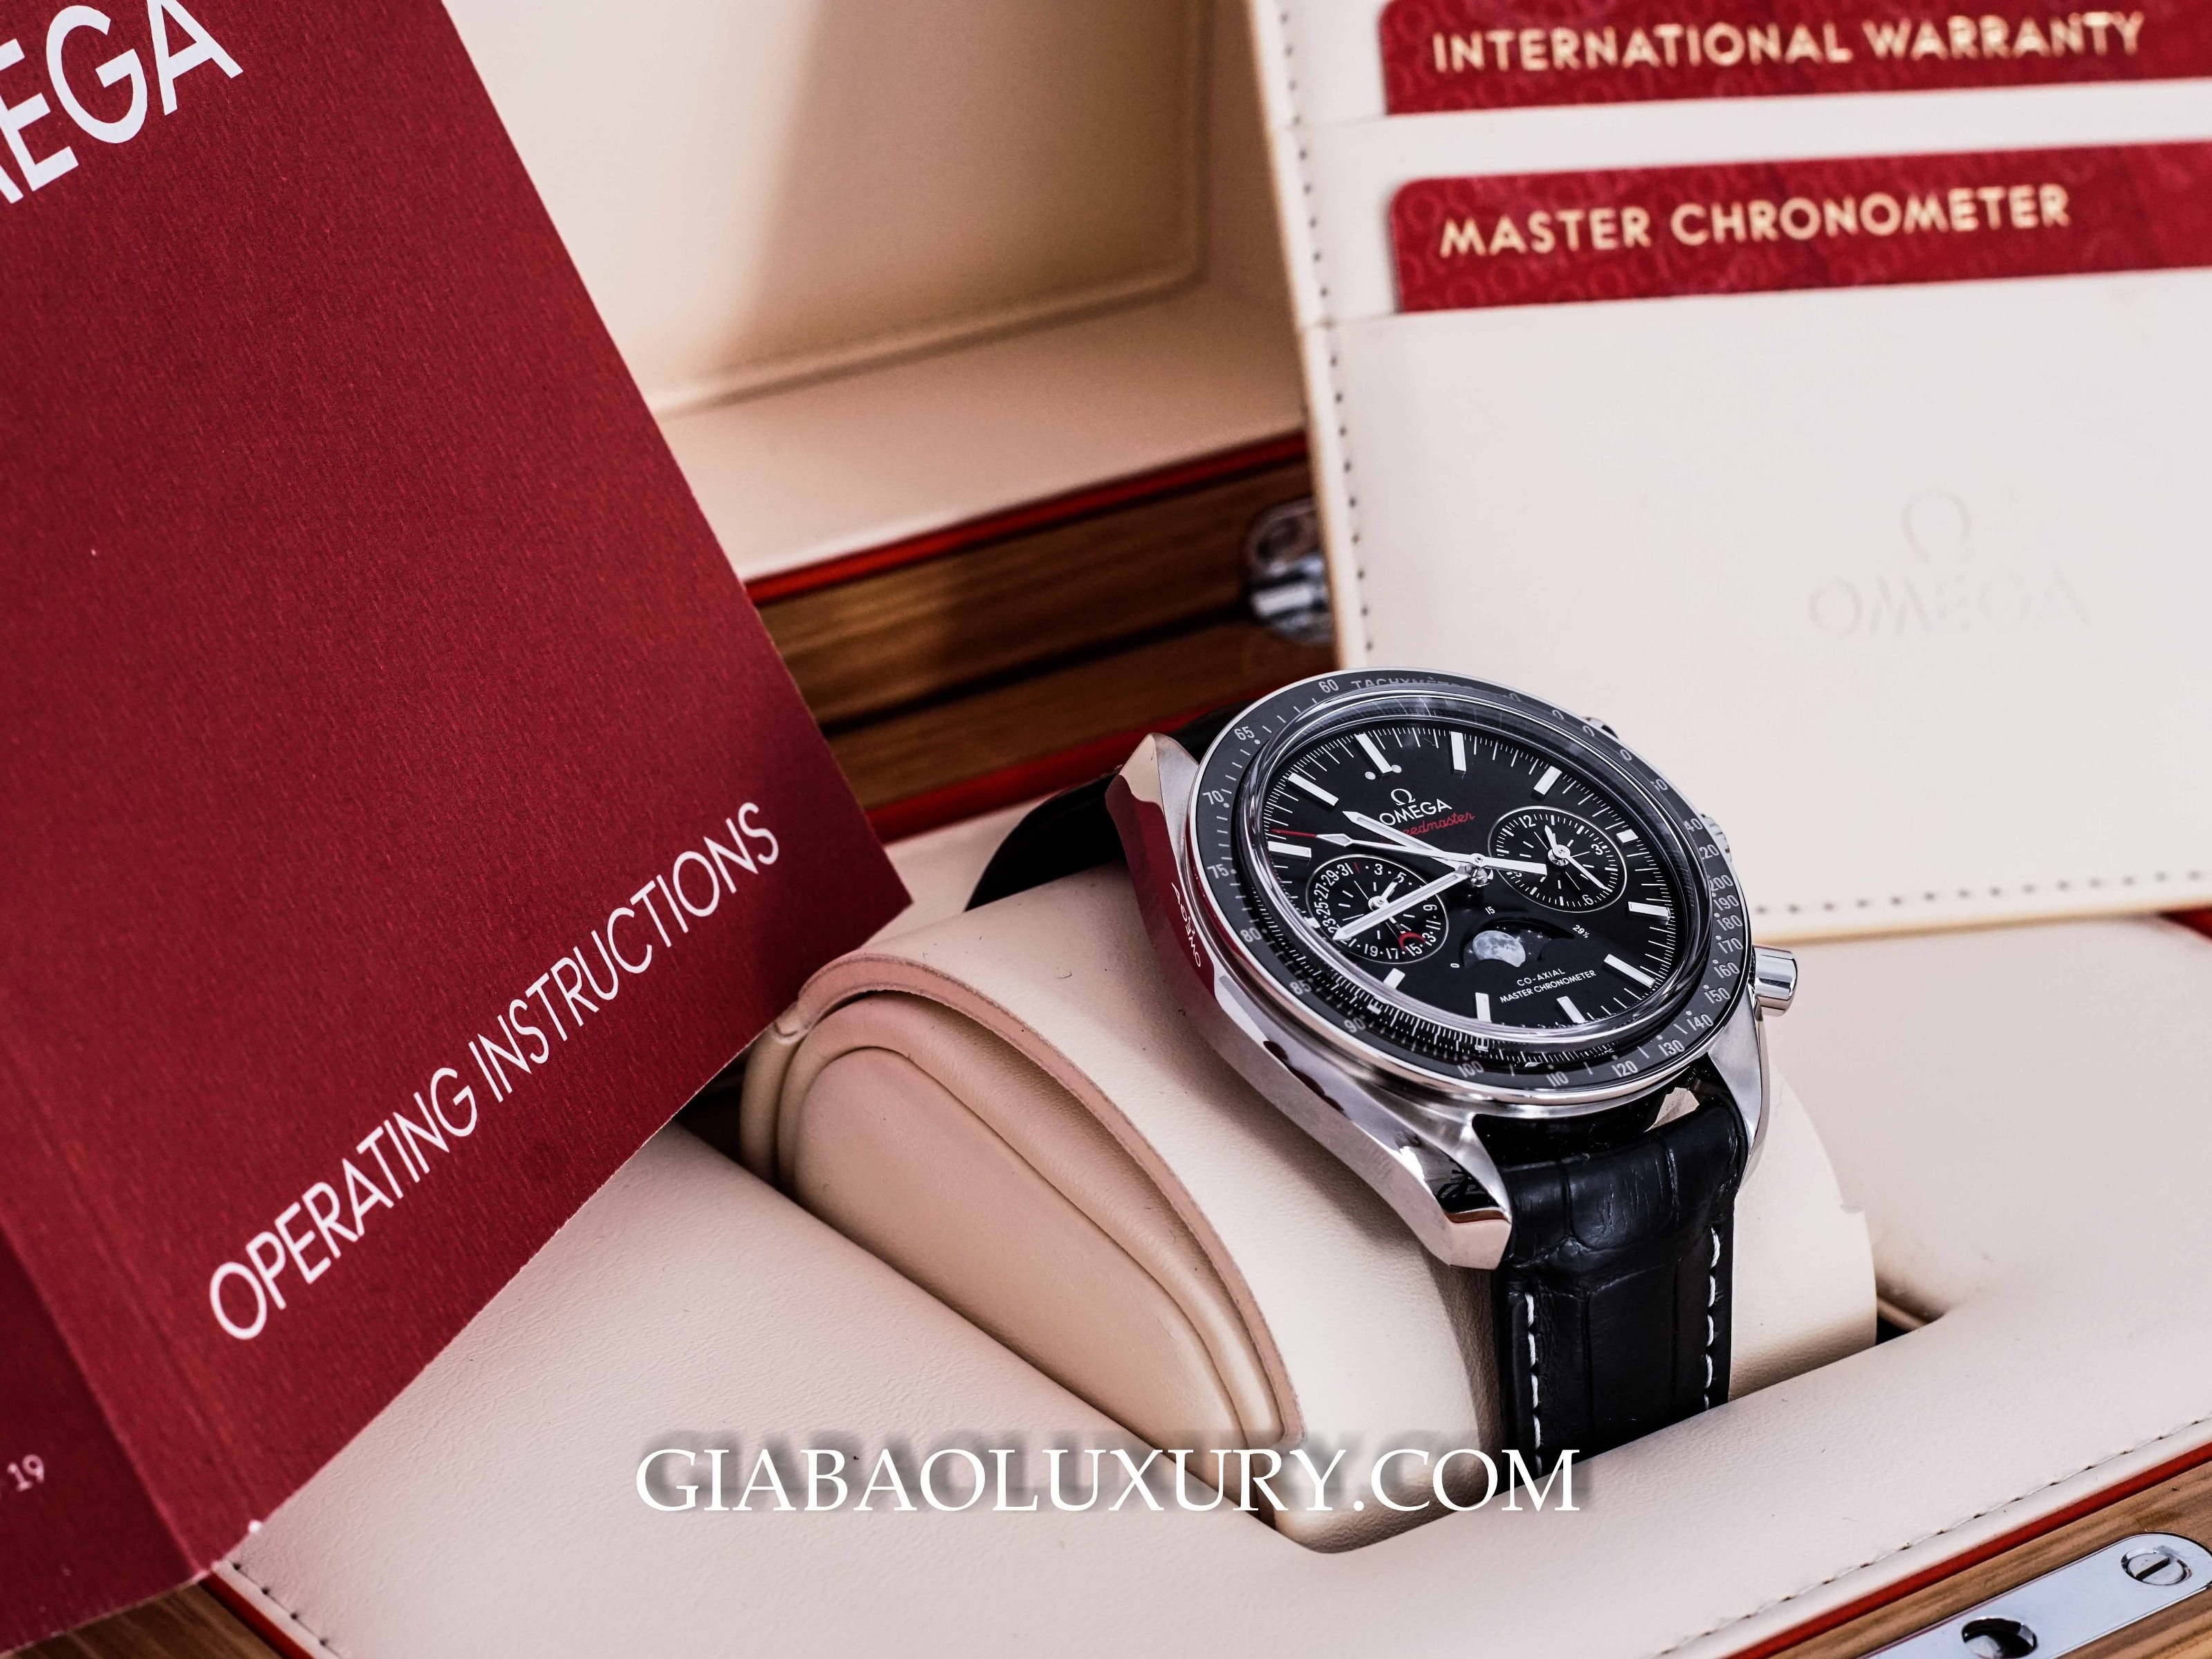 Đồng Hồ Omega Speedmaster Moonwatch Co-Axial Master Chronometer Moonphase Chronograph 44.25mm 304.33.44.52.01.001